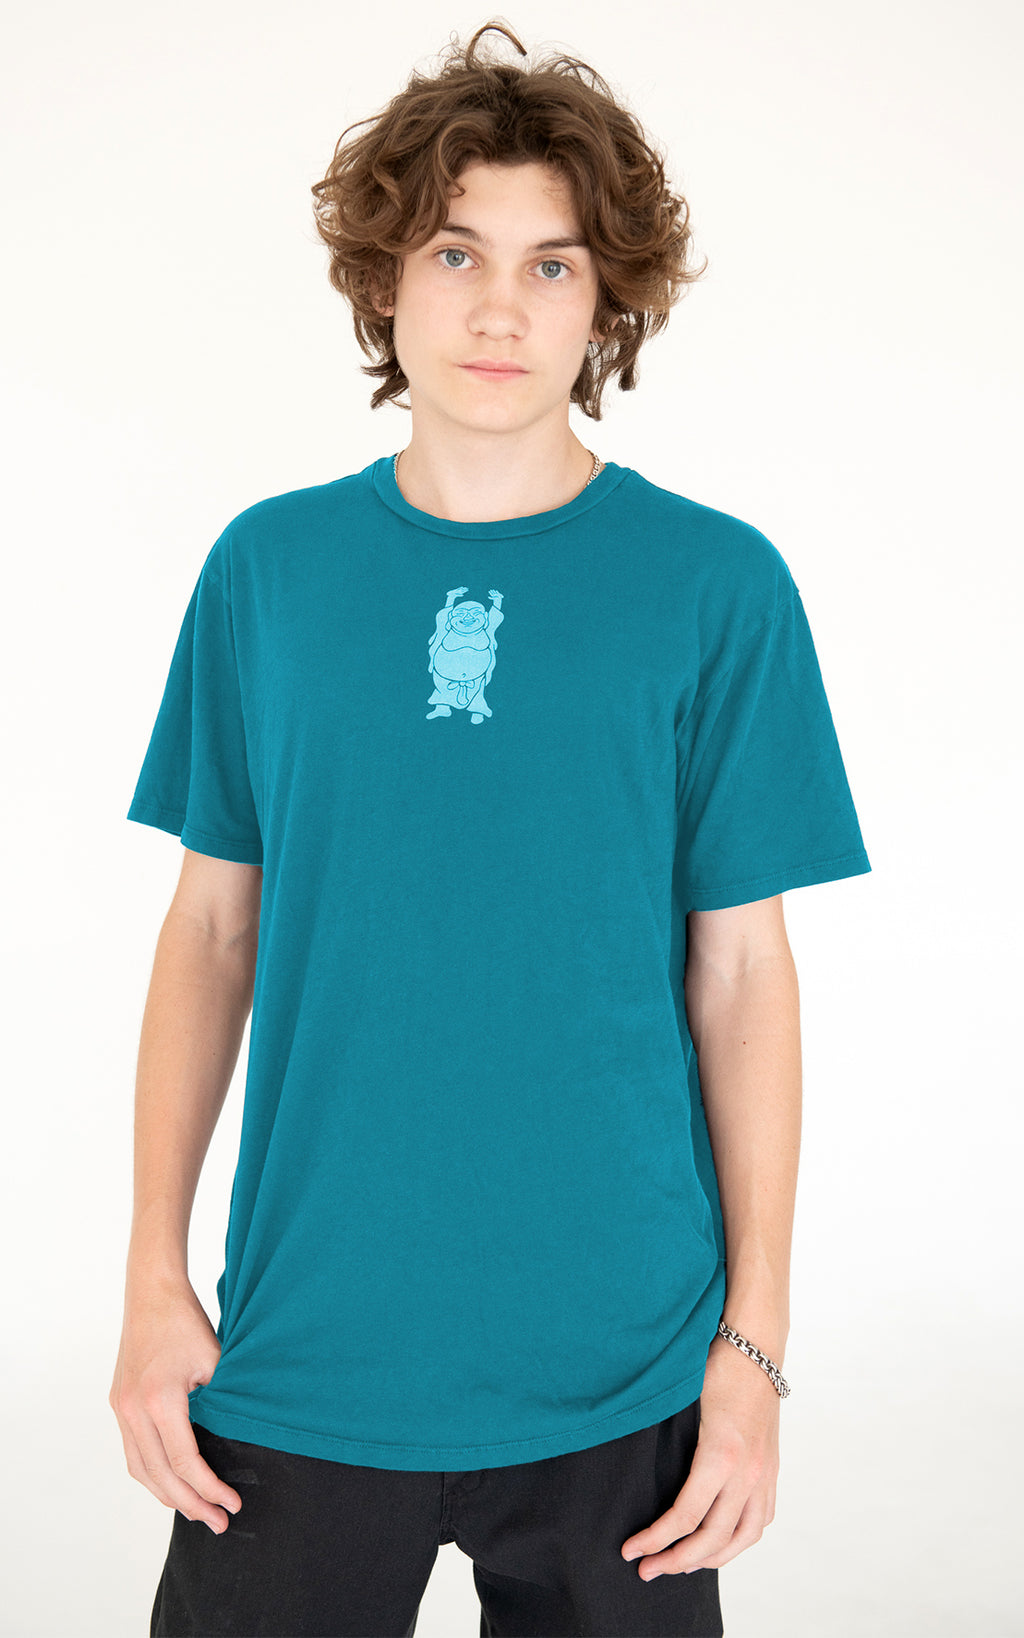 Men's Hotei Tee in Teal Blue